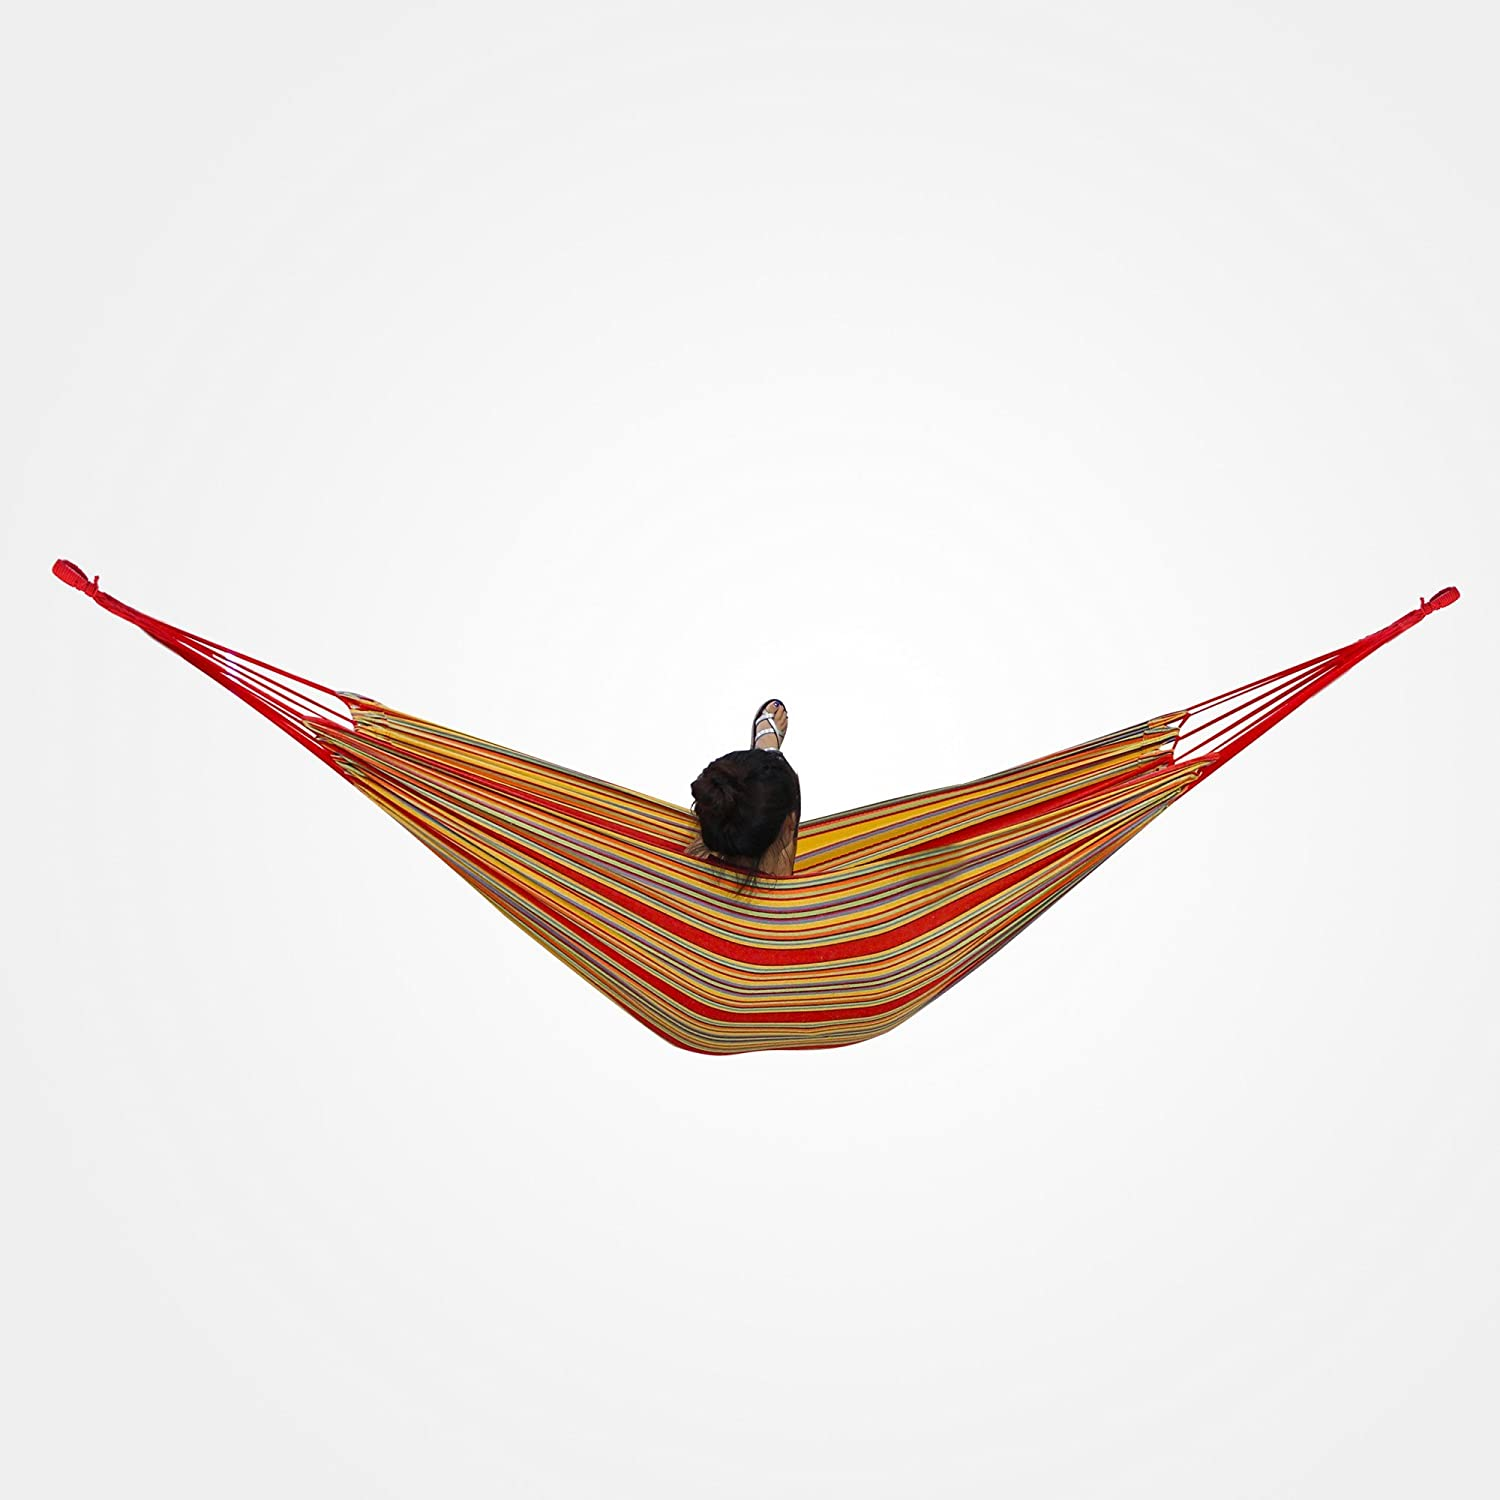 Domaier Hanging Bed, Hammock, Beige, with Stand H-Type, Brazilian, Cotton, Capacity: For 2 people, Hammock material: Polyester Domaier Limited